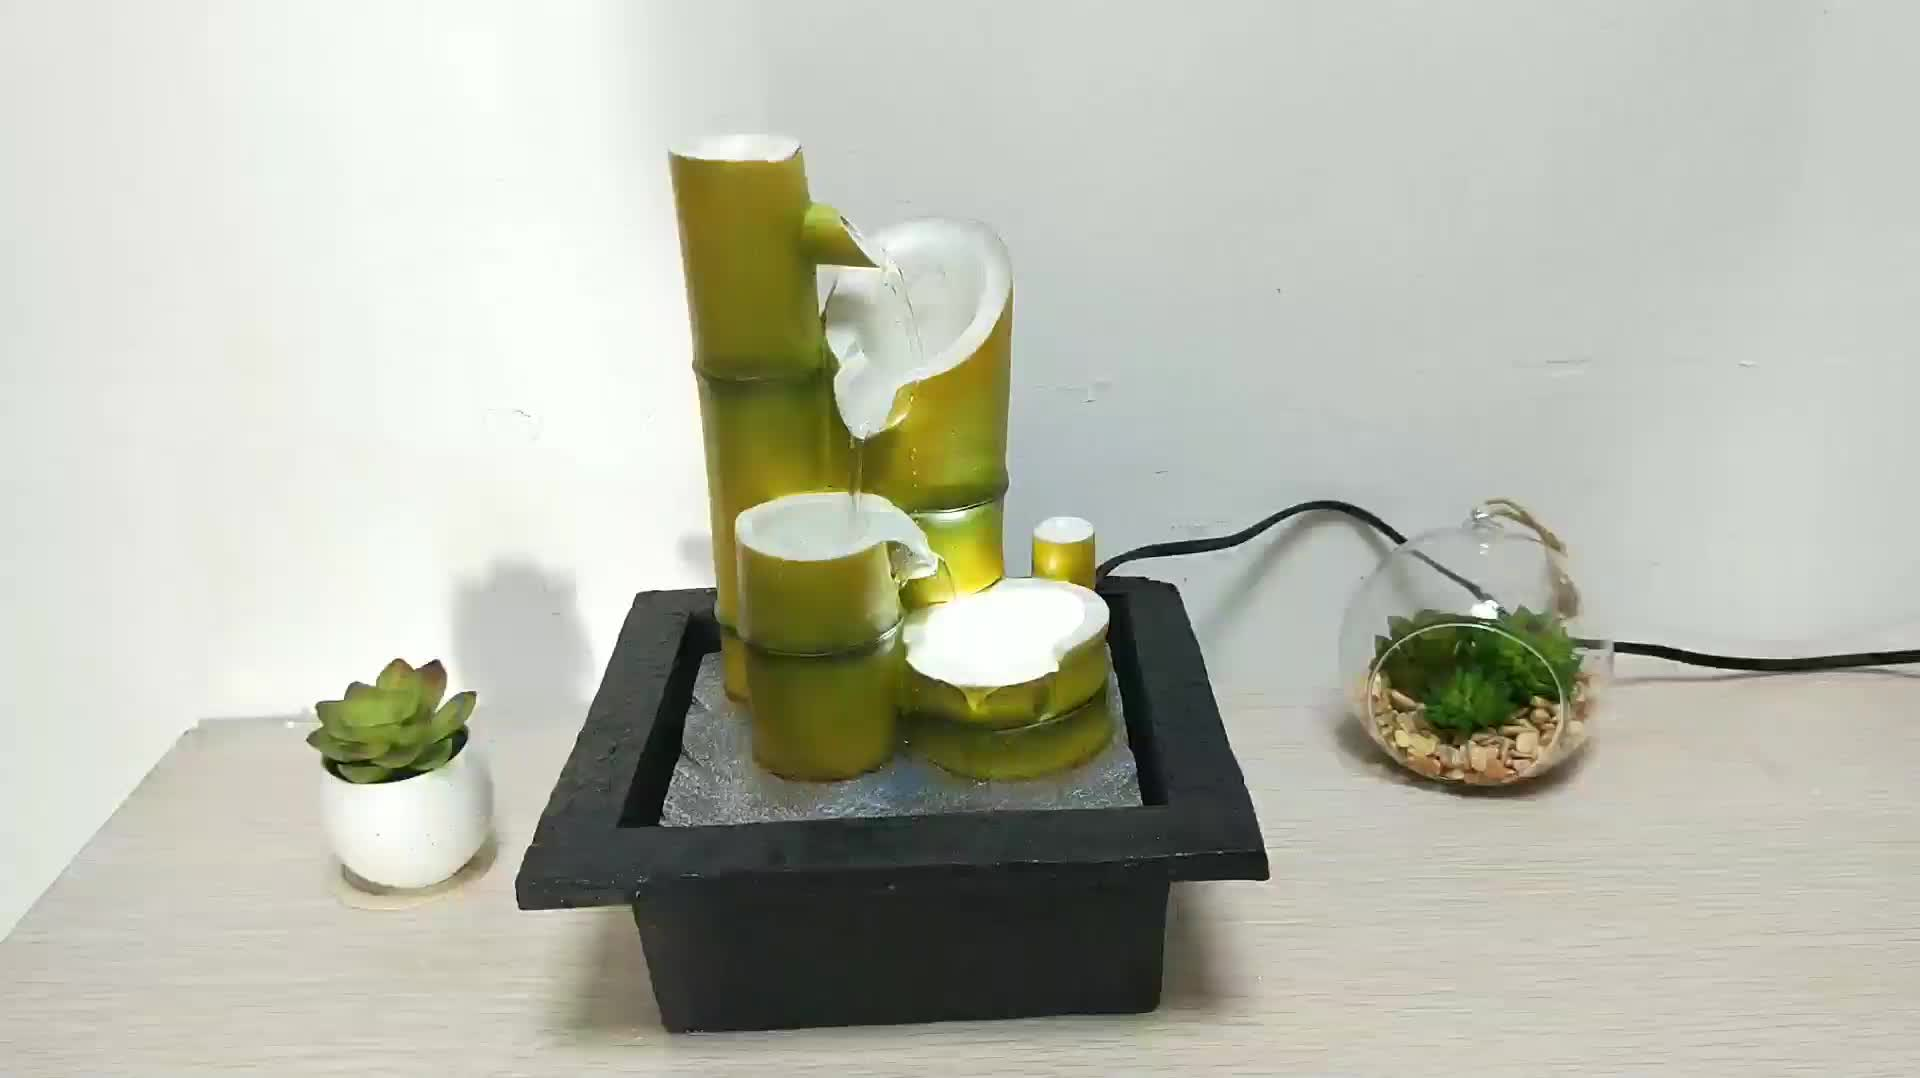 Fountain For Home Decoration: Indoor Fengshui Bamboo Water Fountain Resin Crafts Home